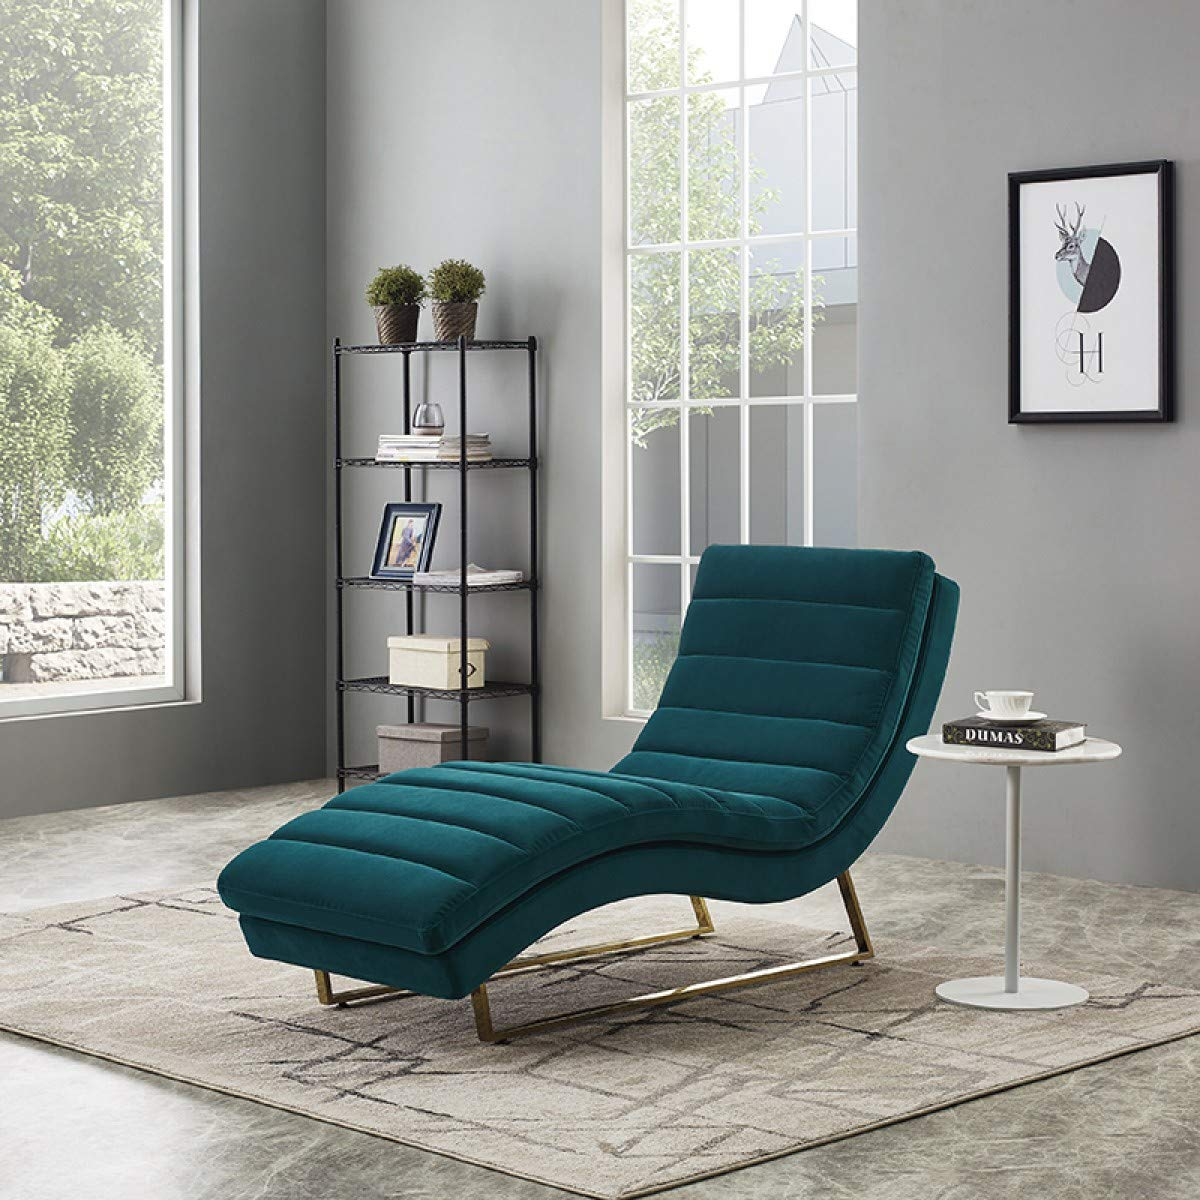 Limari Home Ernesto Collection Modern Style Living Room Velvet Fabric Upholstered Contemporary Tufting Lounge Chaise With Stainless Steel Metal Legs, Green by Limari Home